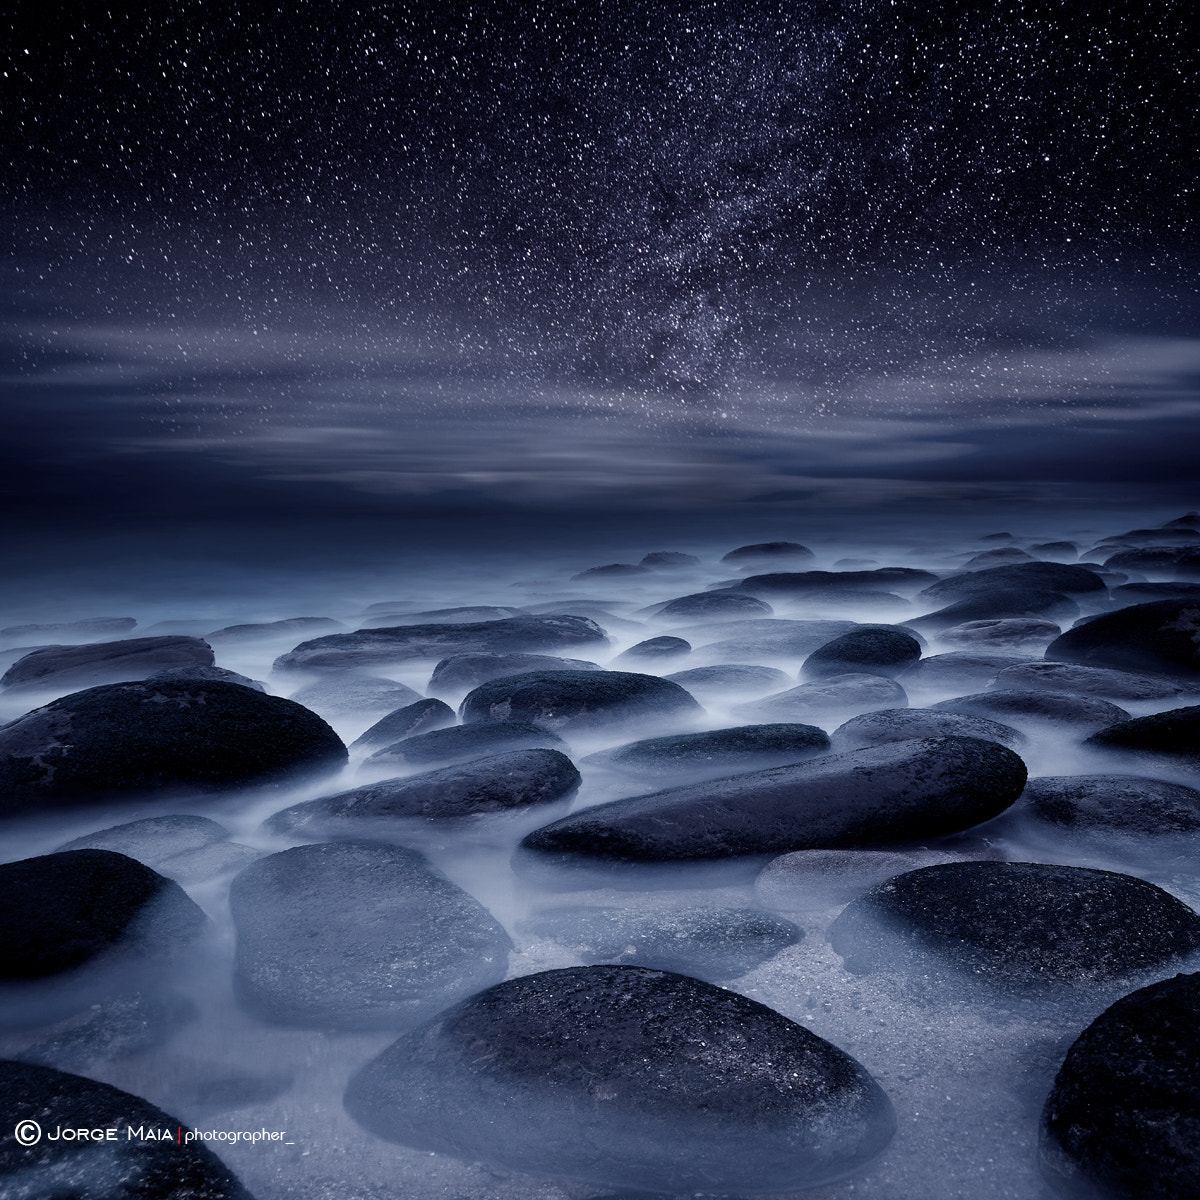 Photograph Beyond our imagination by Jorge Maia on 500px